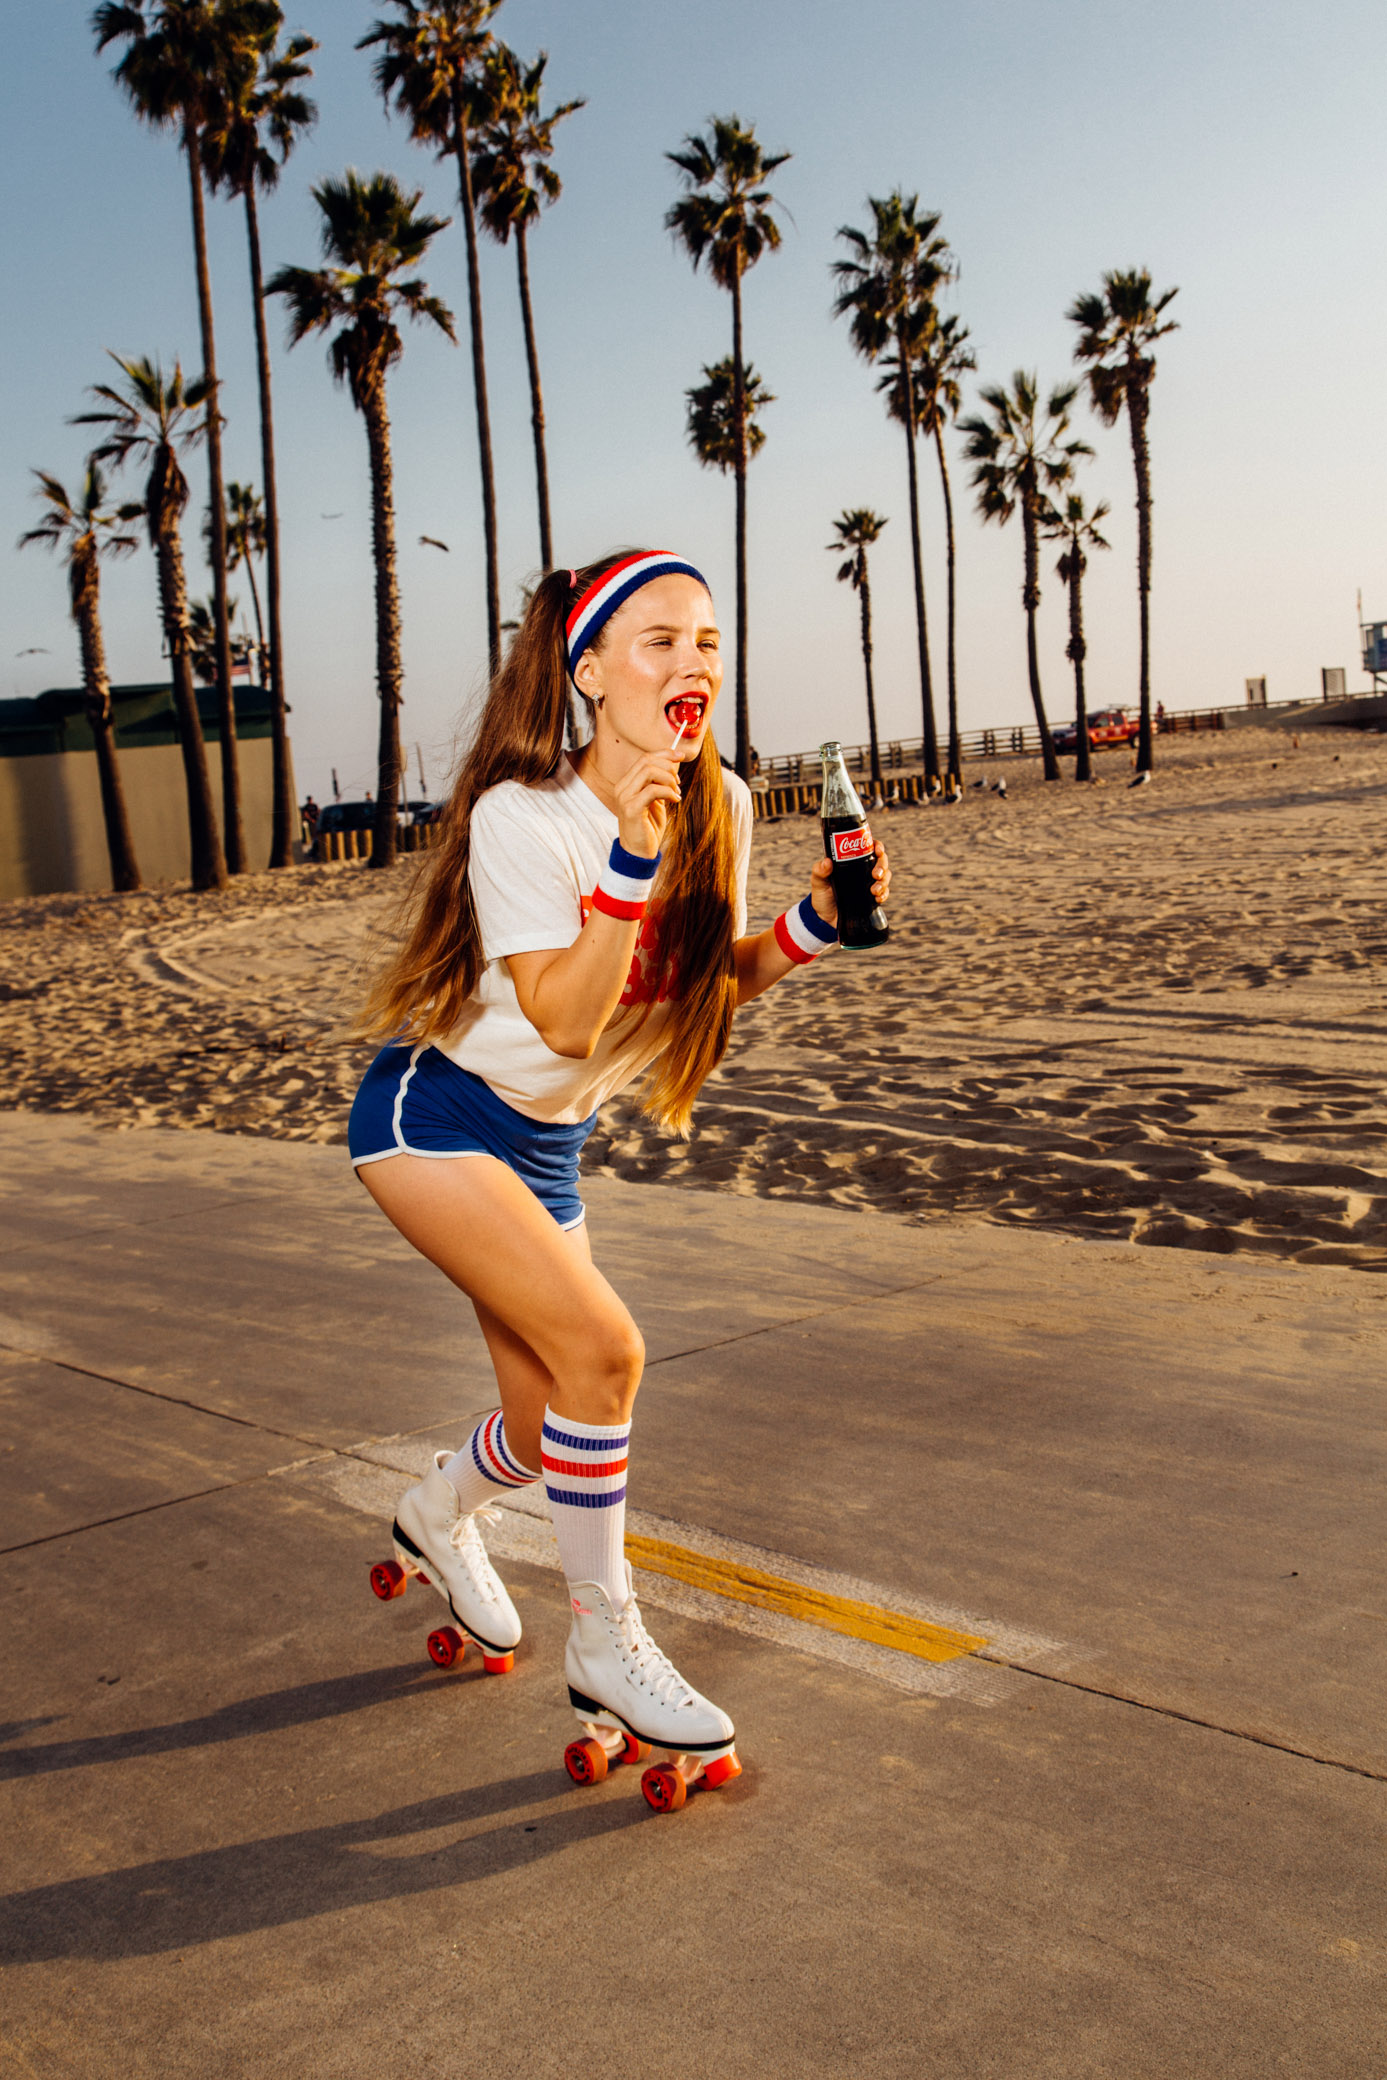 Best Roller skating photoshoot ideas